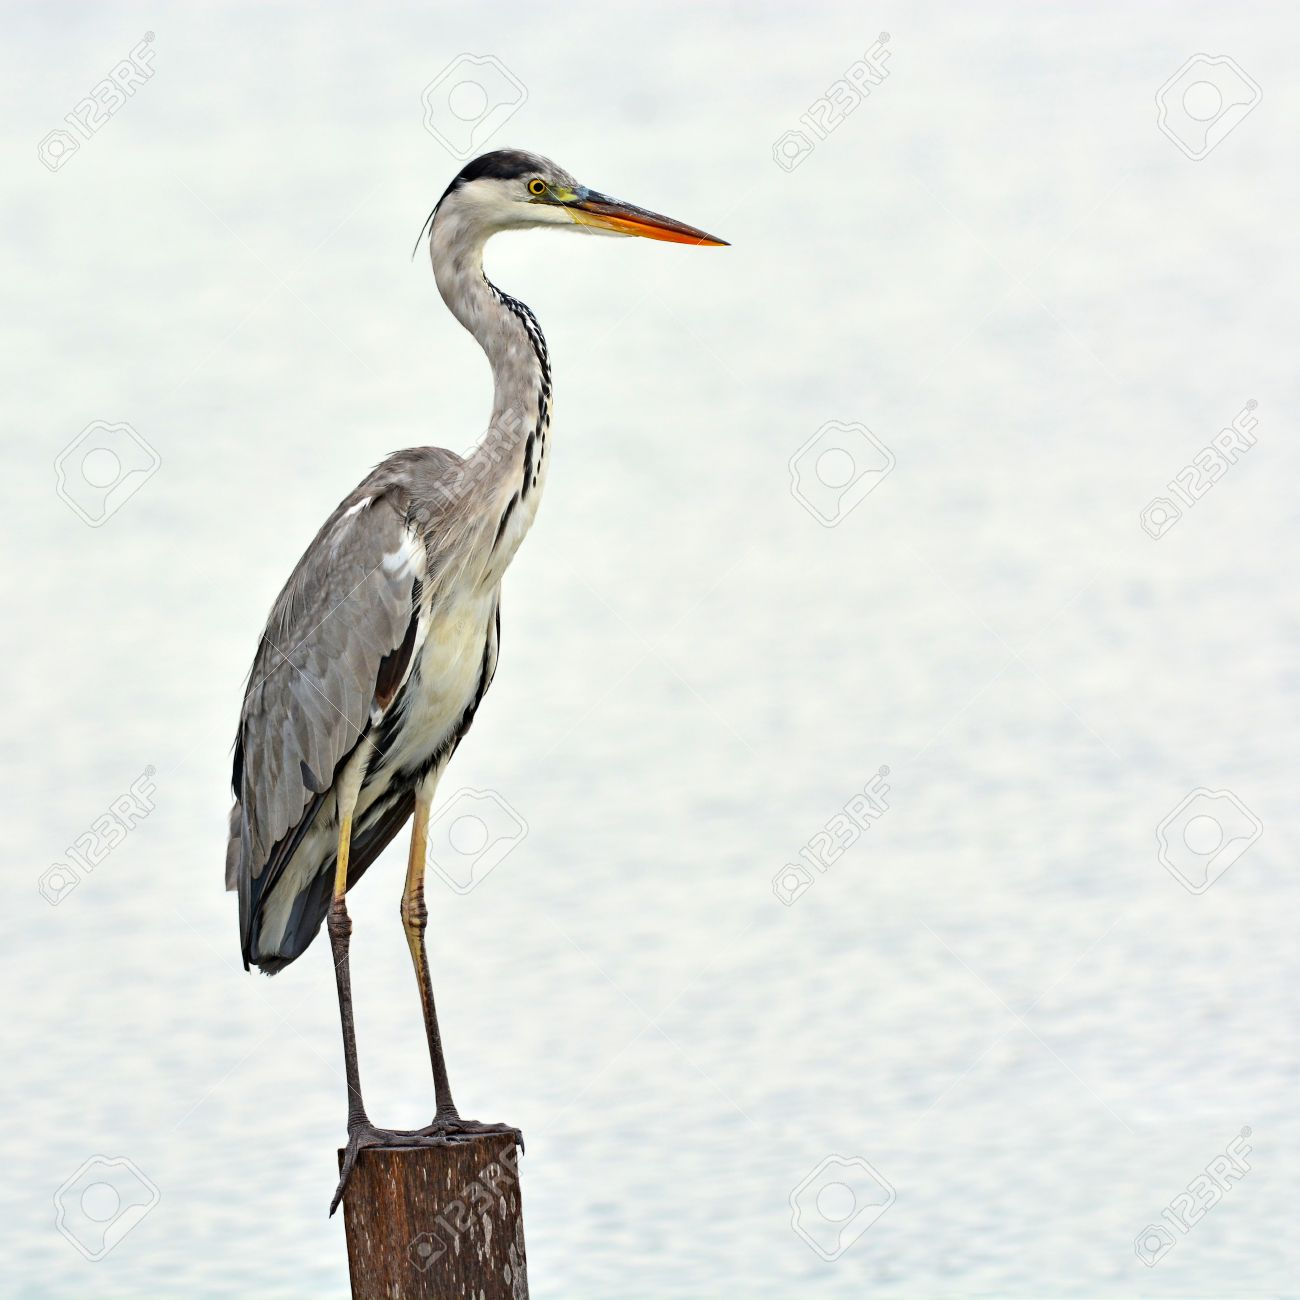 Grey Heron Bird  Ardea Cinerea  On A Log Stock Photo  Picture And     Grey Heron bird  Ardea cinerea  on a log Stock Photo   32926767